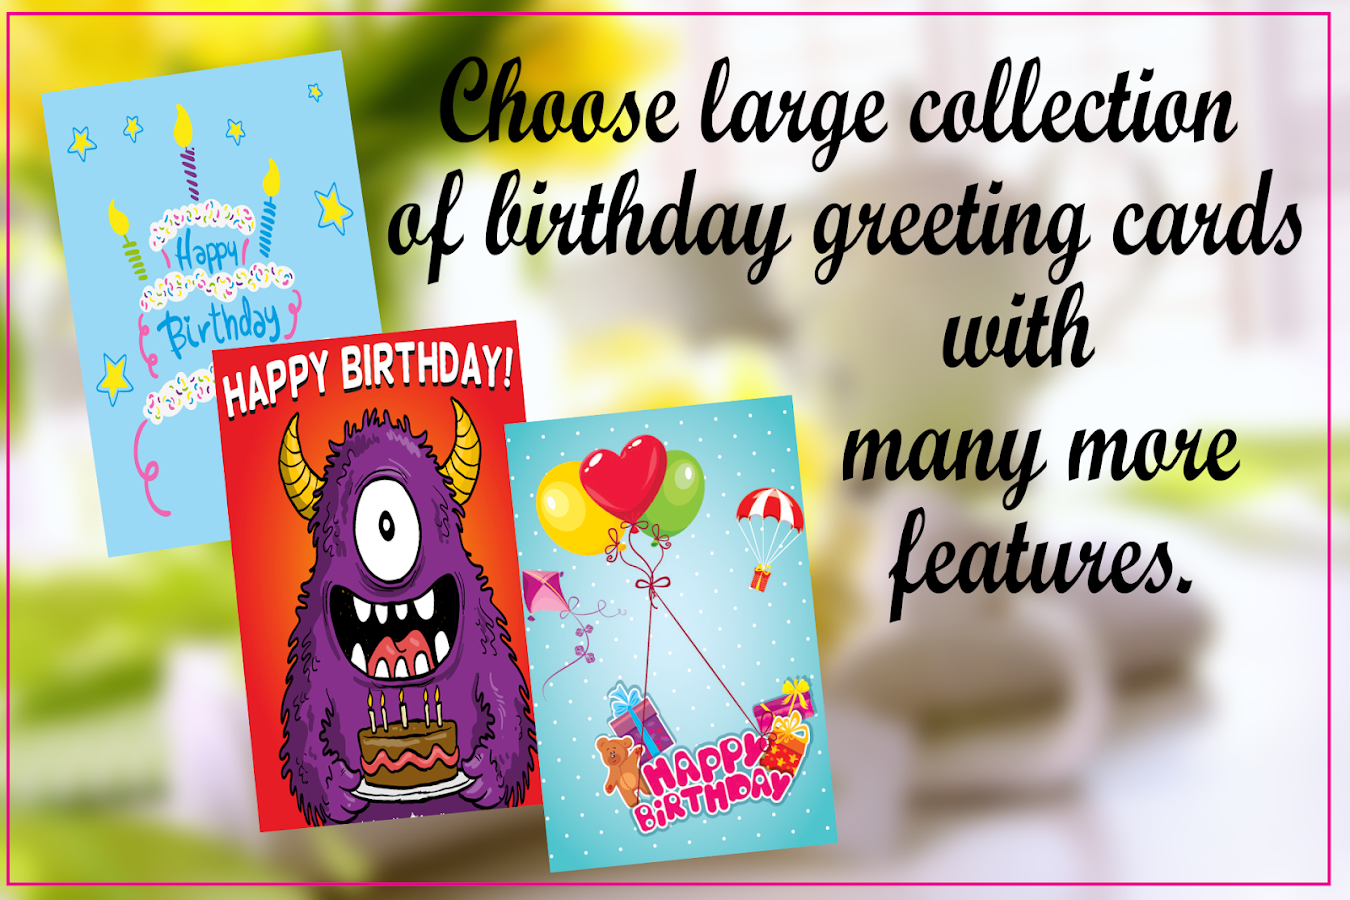 Birthday Greeting Cards Android Apps on Google Play – Birthday Greetings Wishes